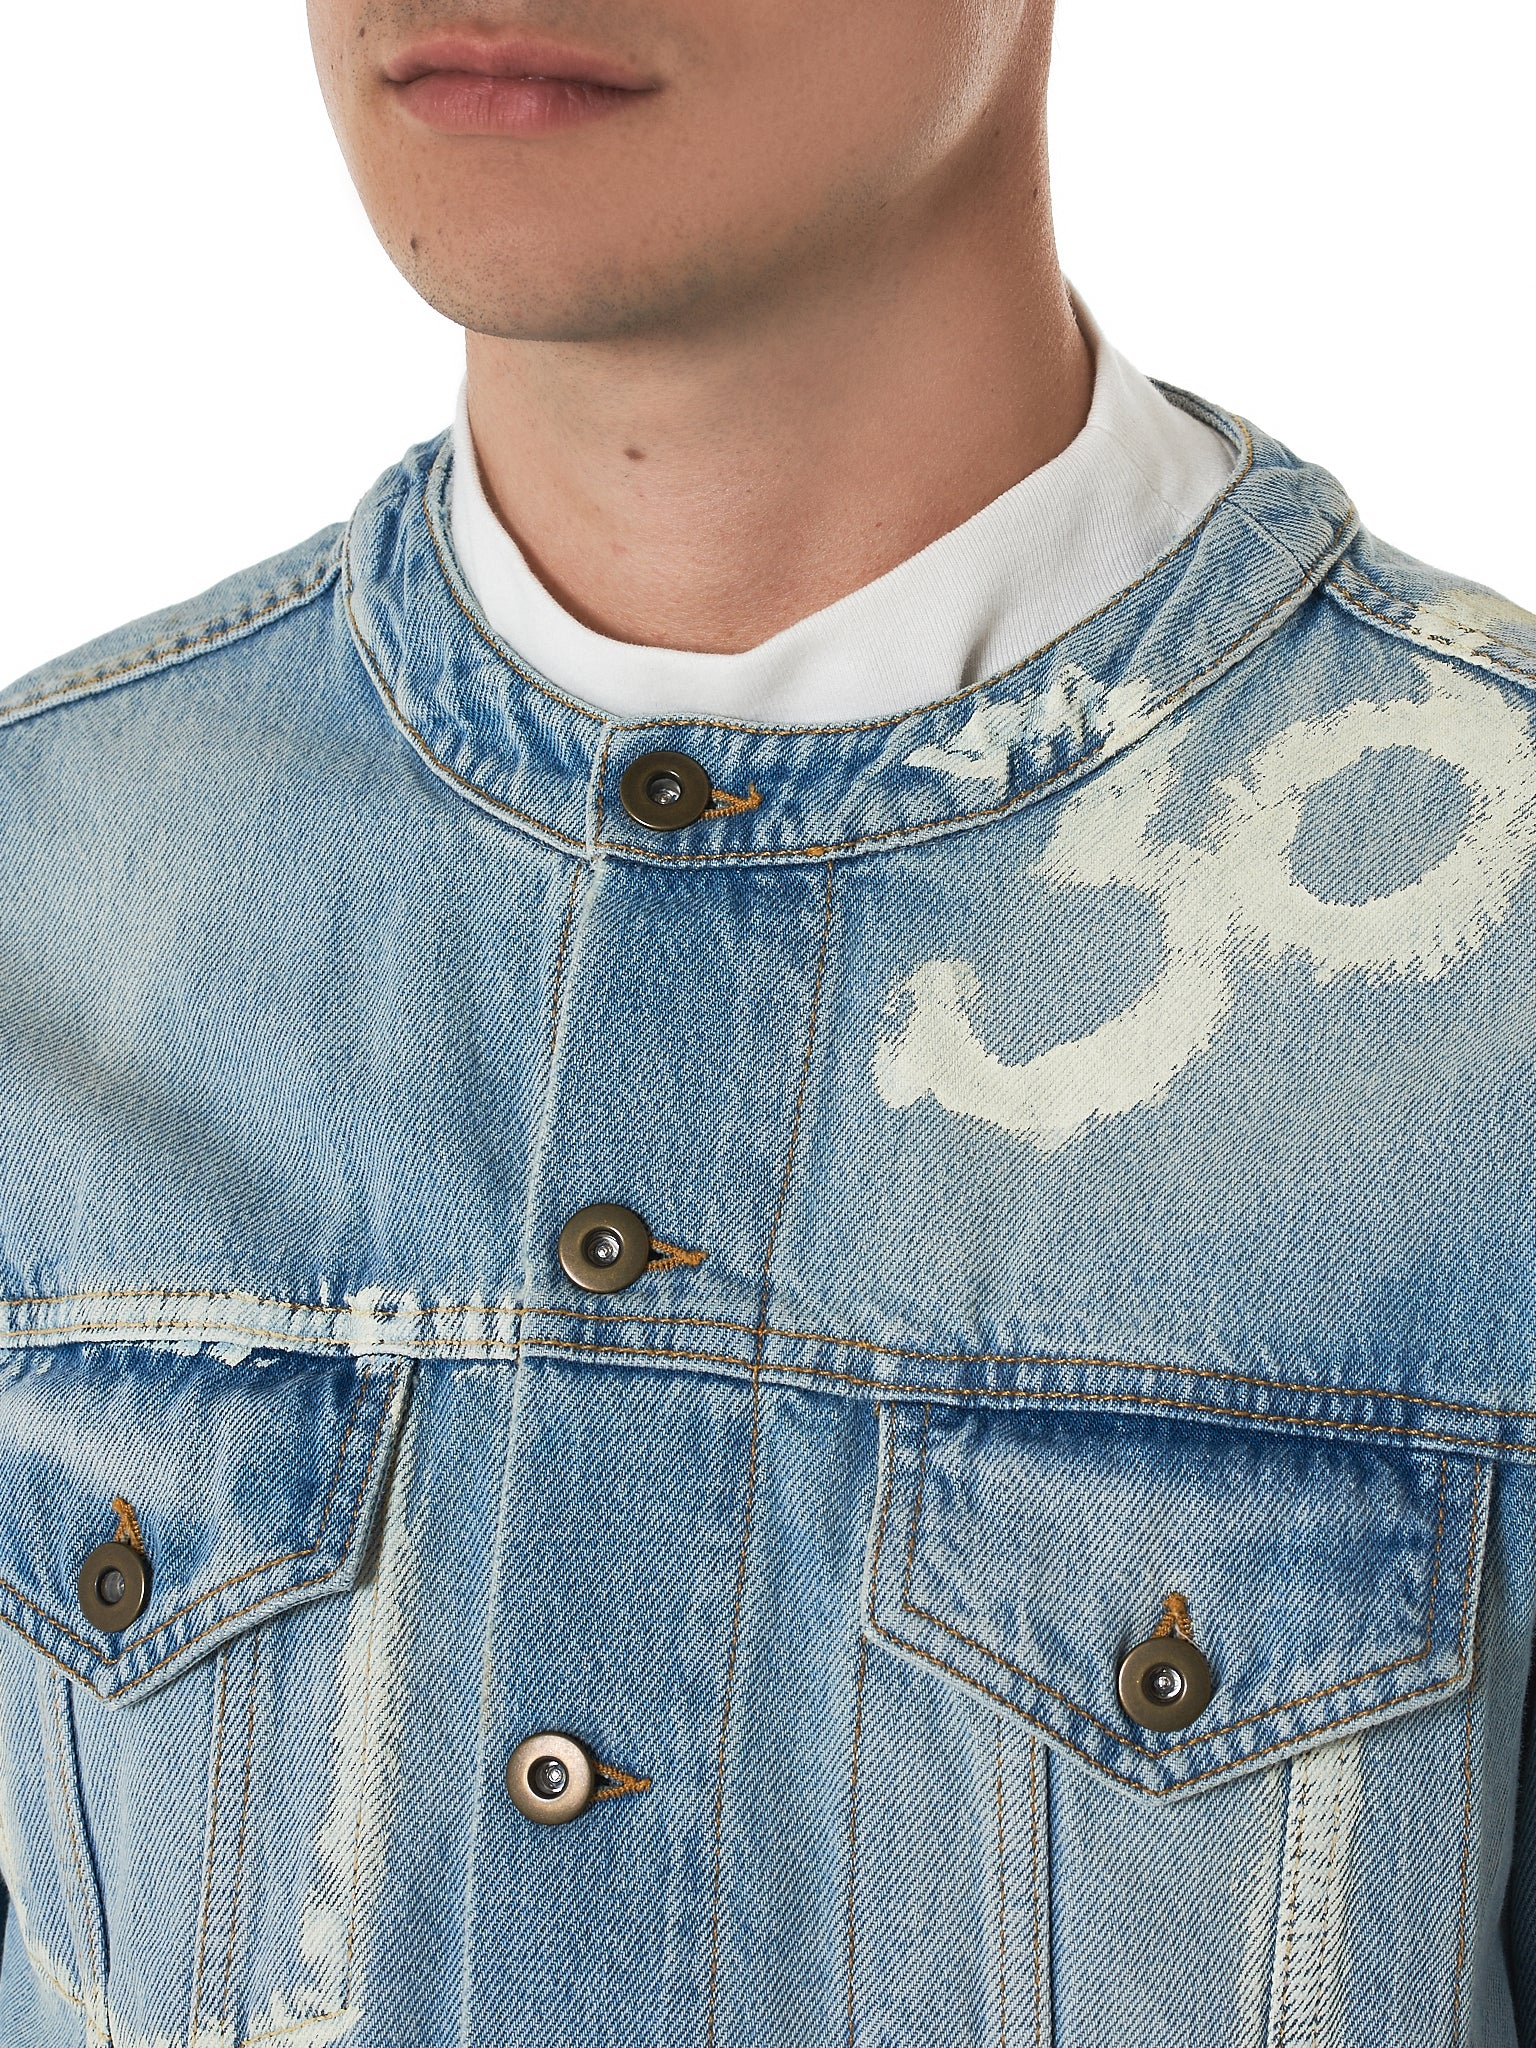 IH NOM UH NIT Denim Jacket - Hlorenzo Detail 1